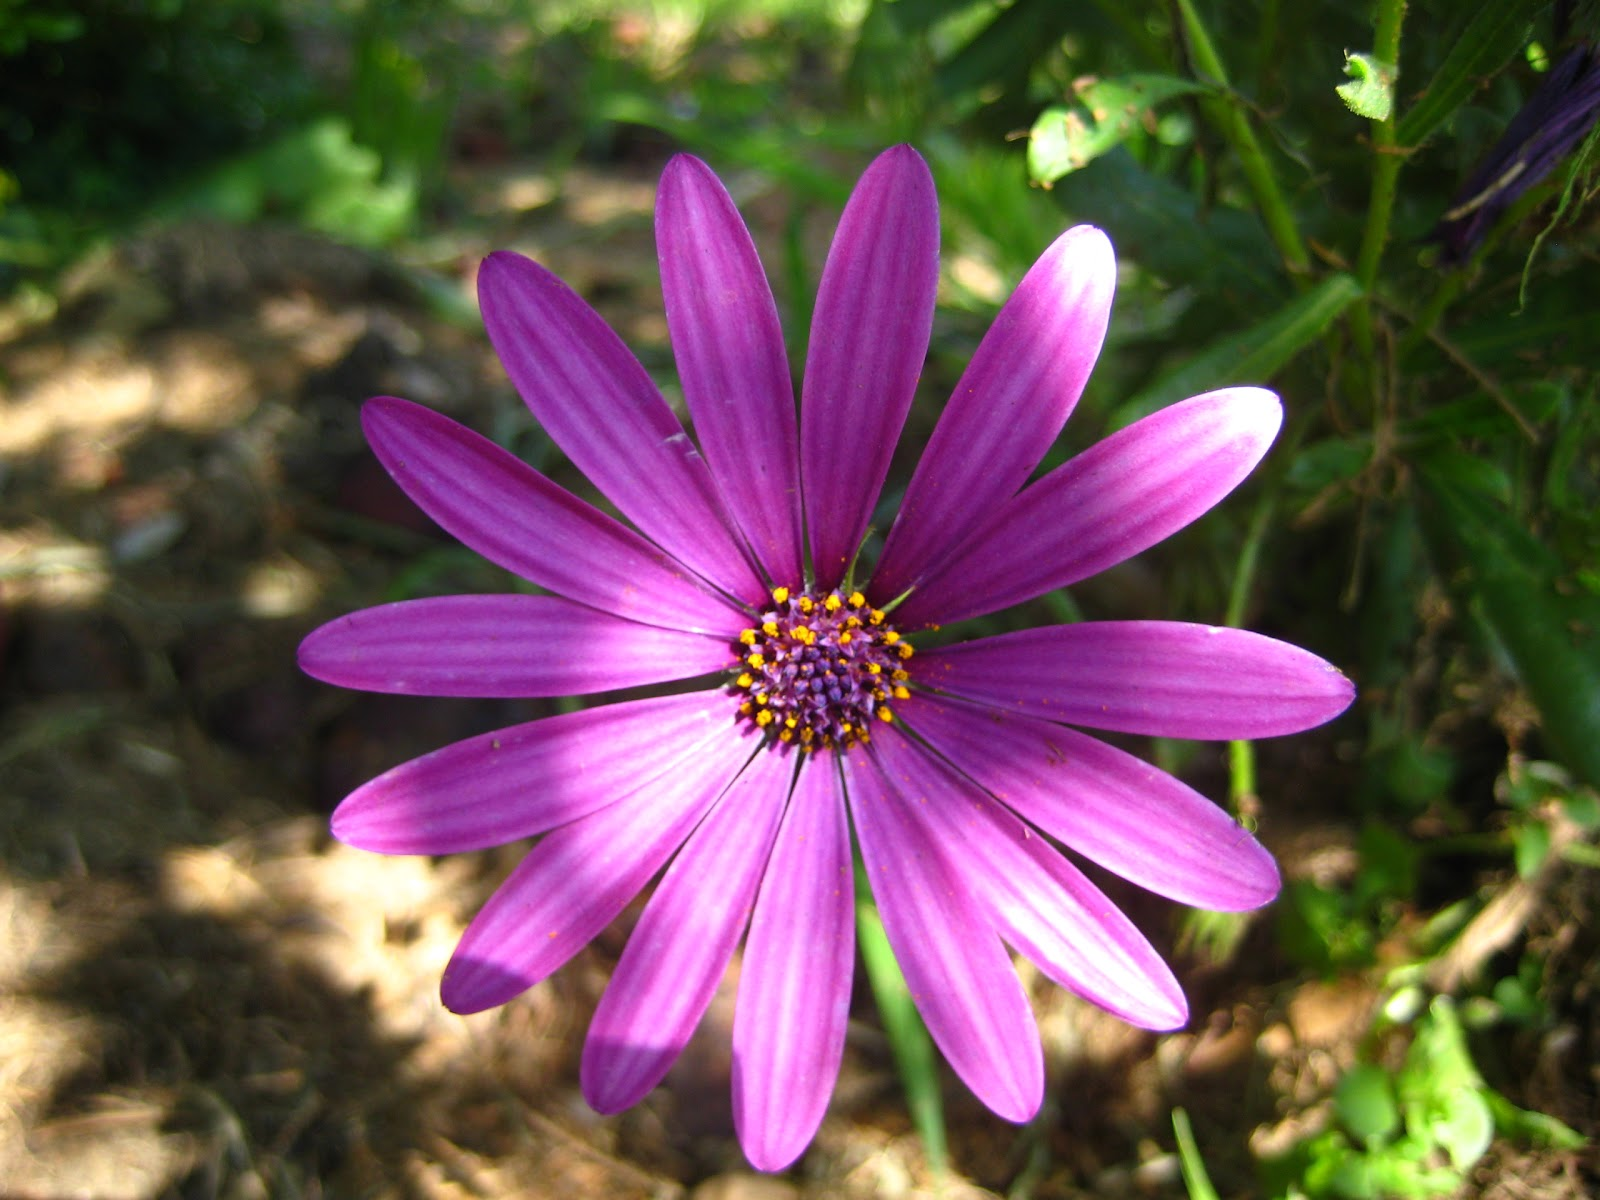 Catherine south south african summer flowers south african summer flowers izmirmasajfo